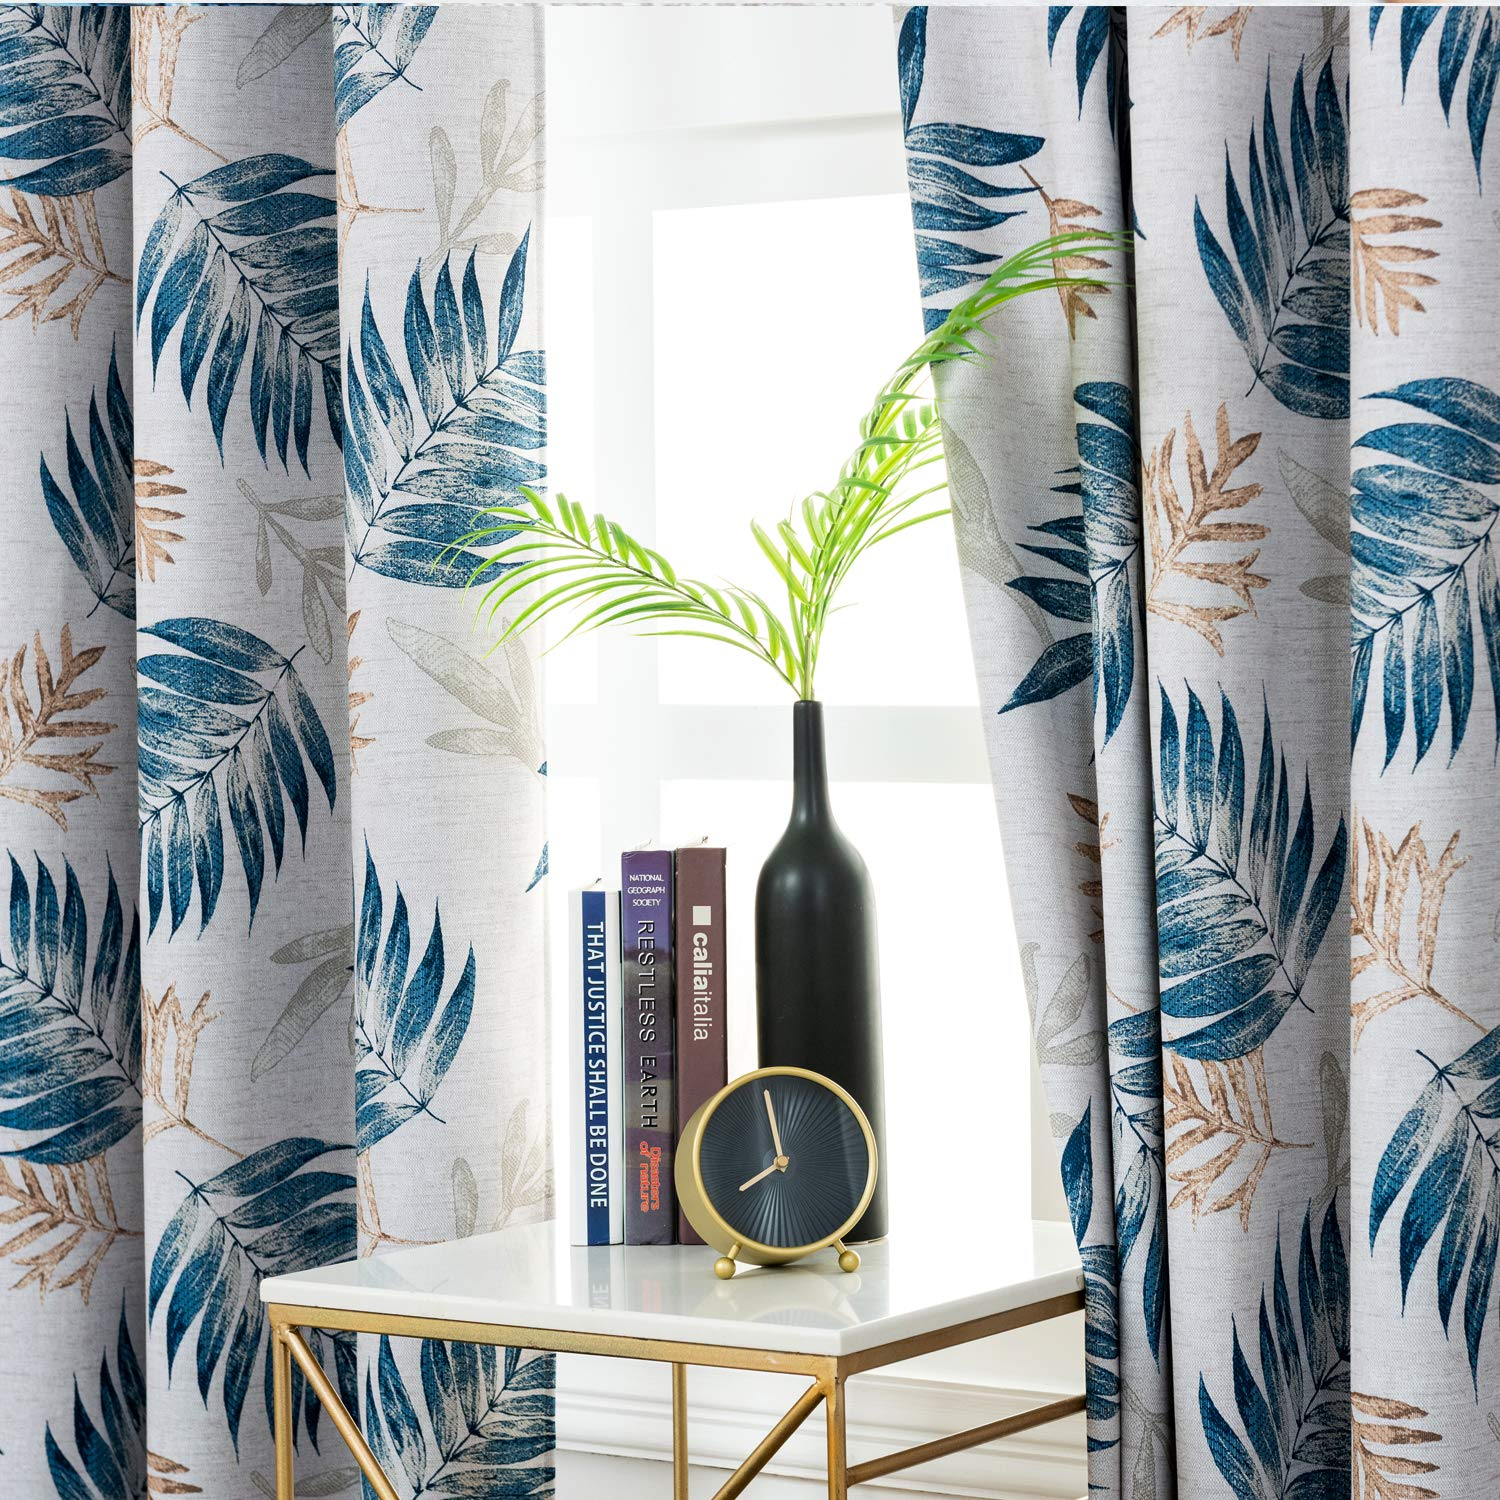 Blackout Ready Made Curtain with Tropical Plants Print Design For All Season Thermal Insulated for Living Room